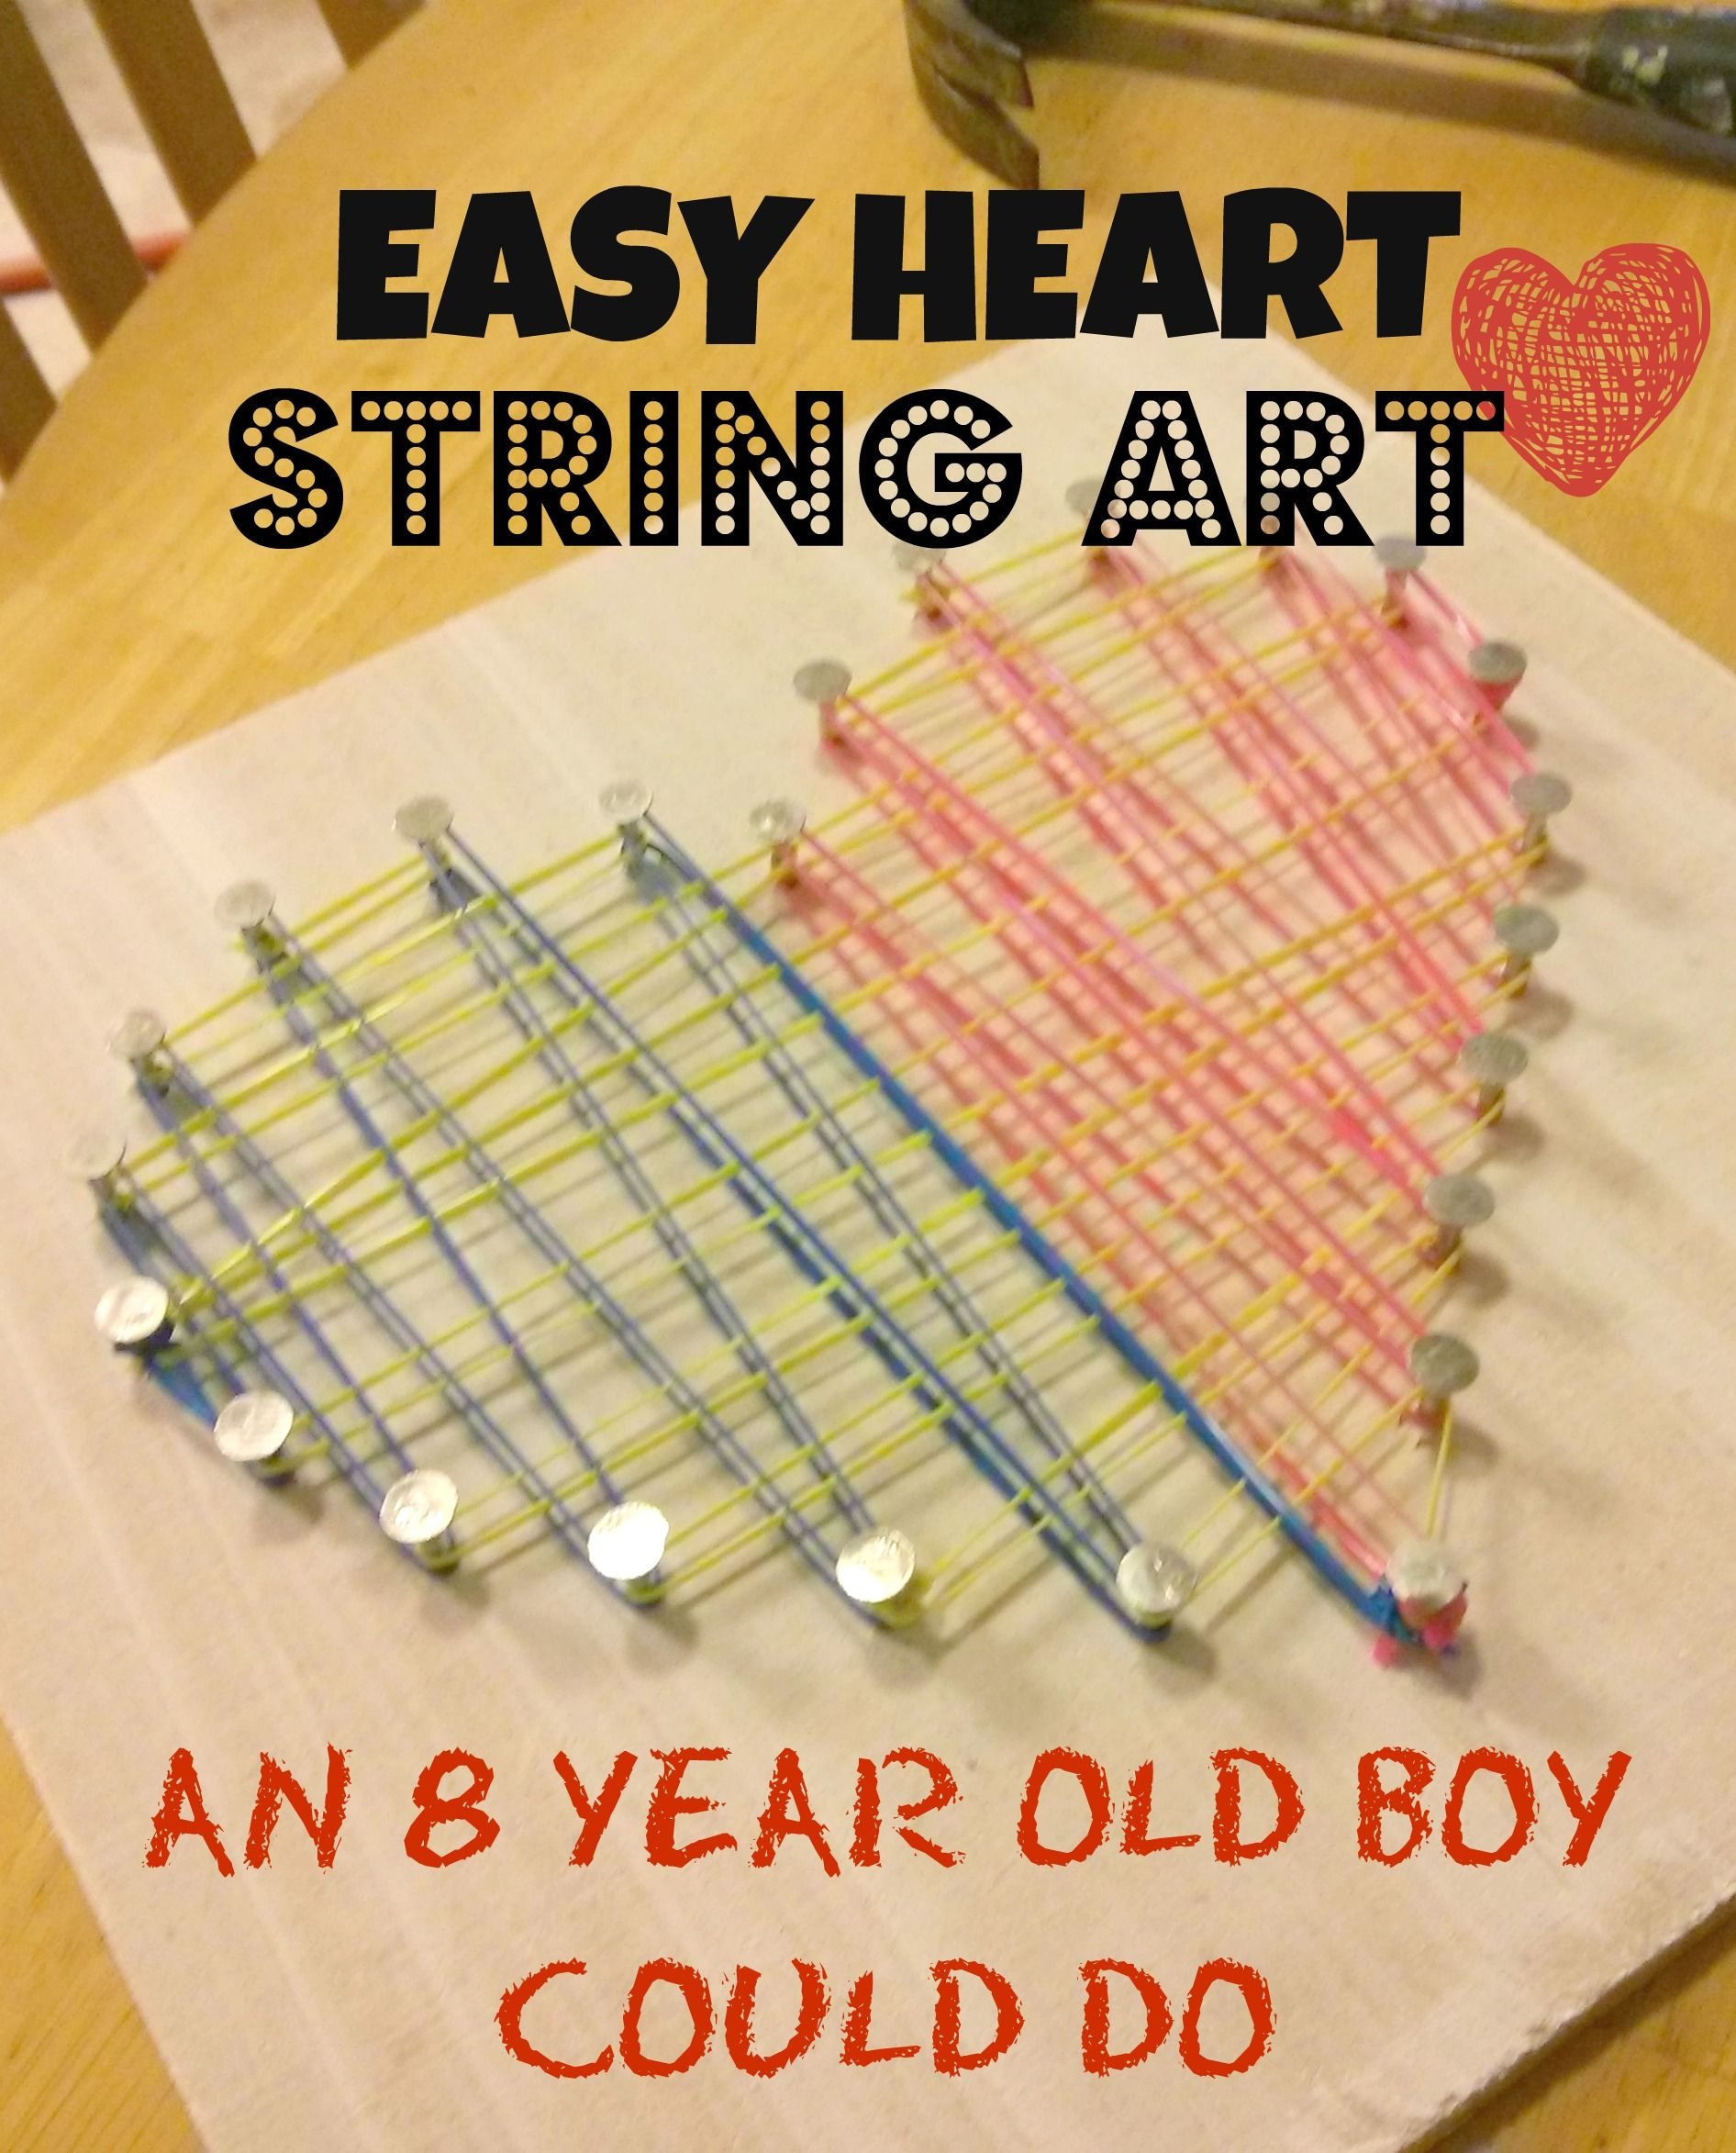 What A Fun Idea For An Easy Cheap Craft Even An 8 Year Old Boy